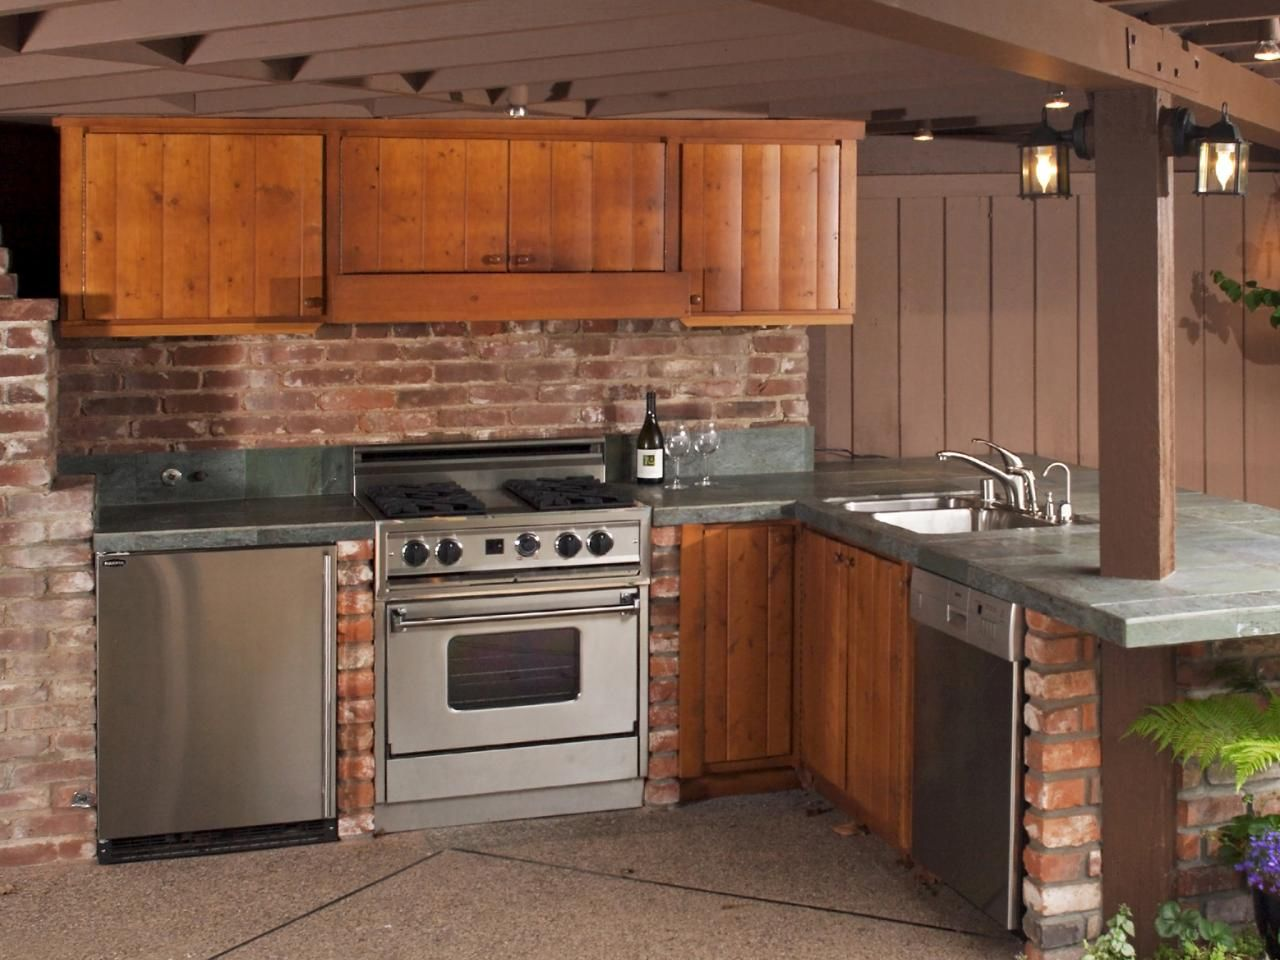 Home Depot Outdoor Kitchen Cabinets - top Rated Interior Paint Check ...